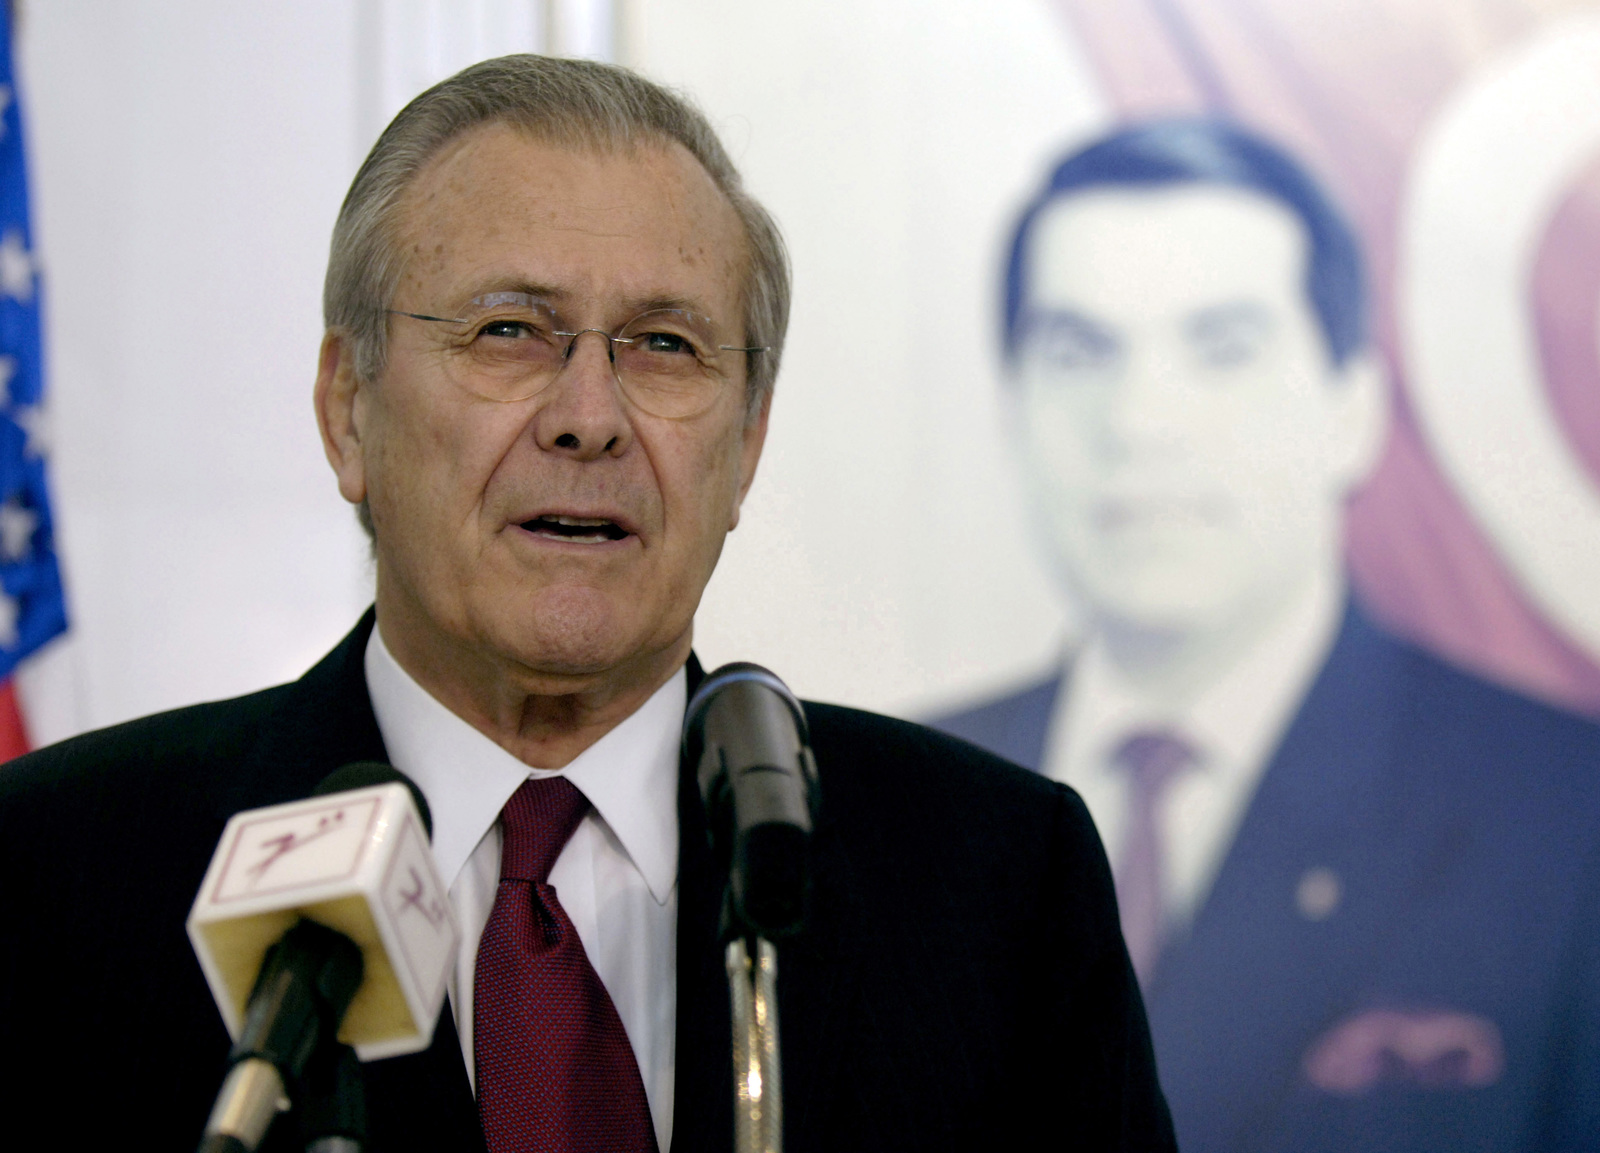 The Honorable Donald H. Rumsfeld, U.S. Secretary of Defense, talks to the press during his visit at Tunis, Tunisia, on Feb 11, 2006. Sec. Rumsfeld is on a tour of numerous North African countries after attending the North Atlantic Treaty Organization (NATO) Defense Minister Meeting in Italy. (DoD photo by PETTY Officer 1ST Class Chad J. McNeeley) (Released)